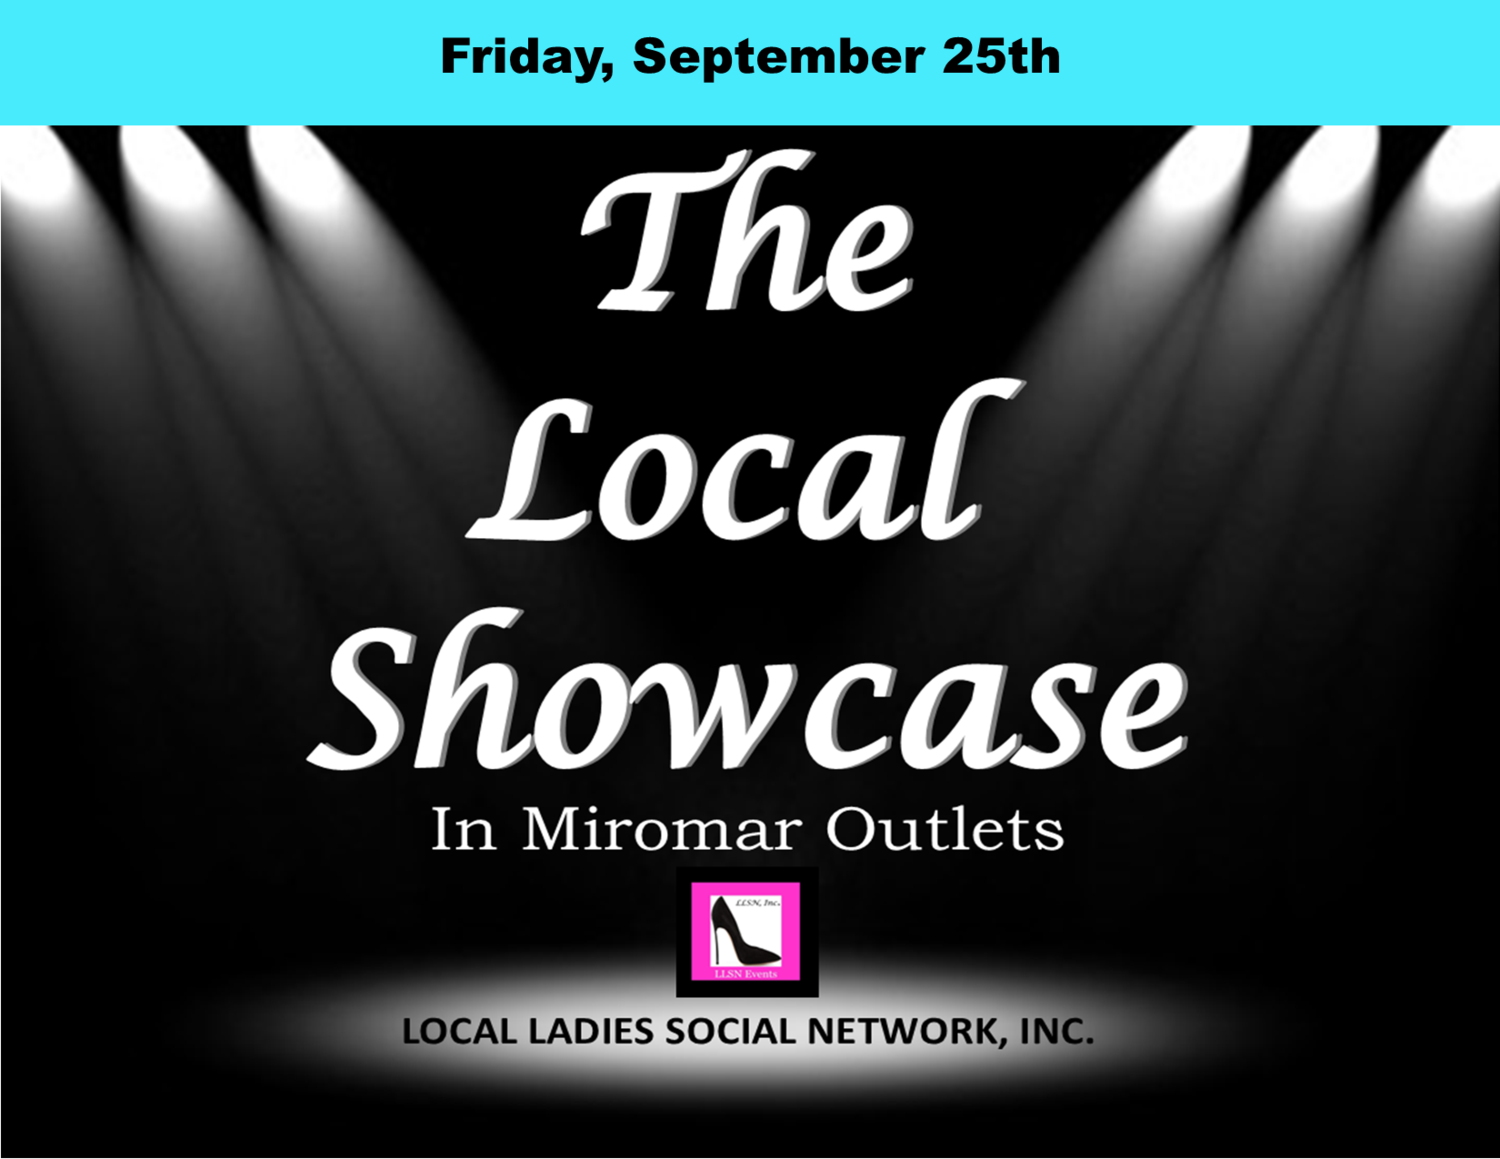 Friday, September 25th, 11am-7pm.